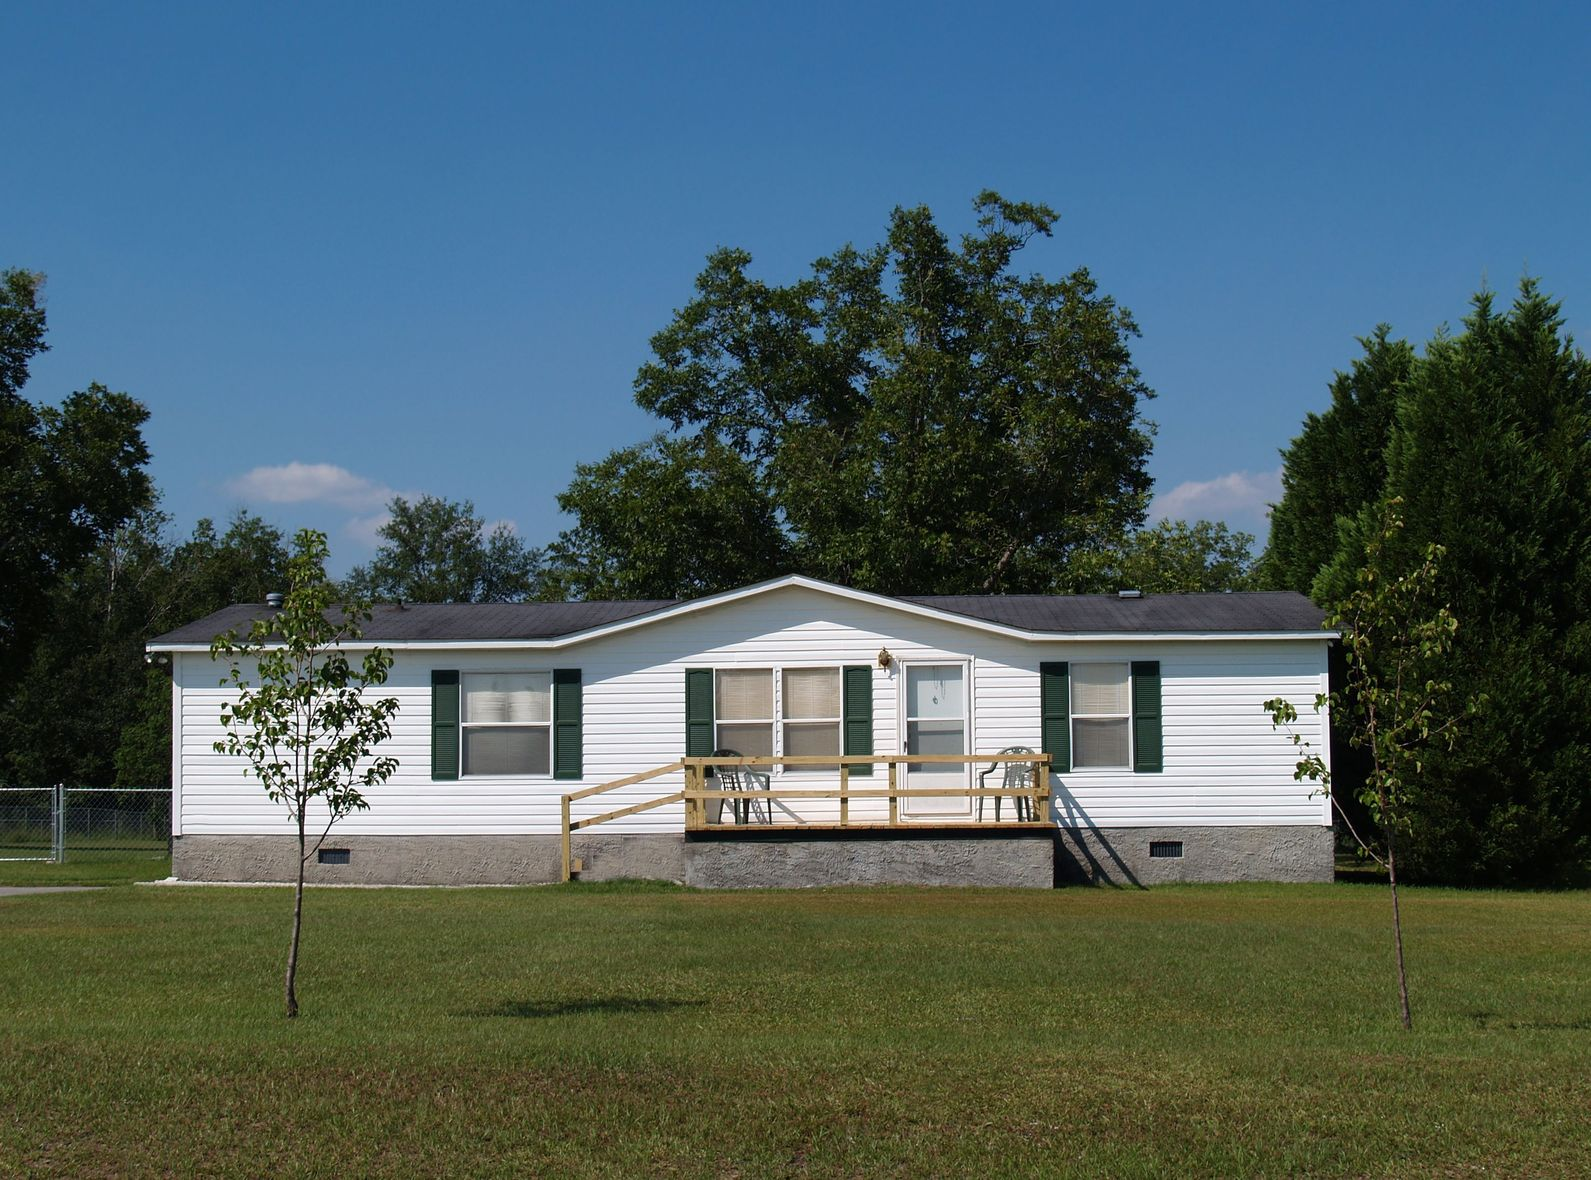 Miami, FL. Mobile Home Insurance